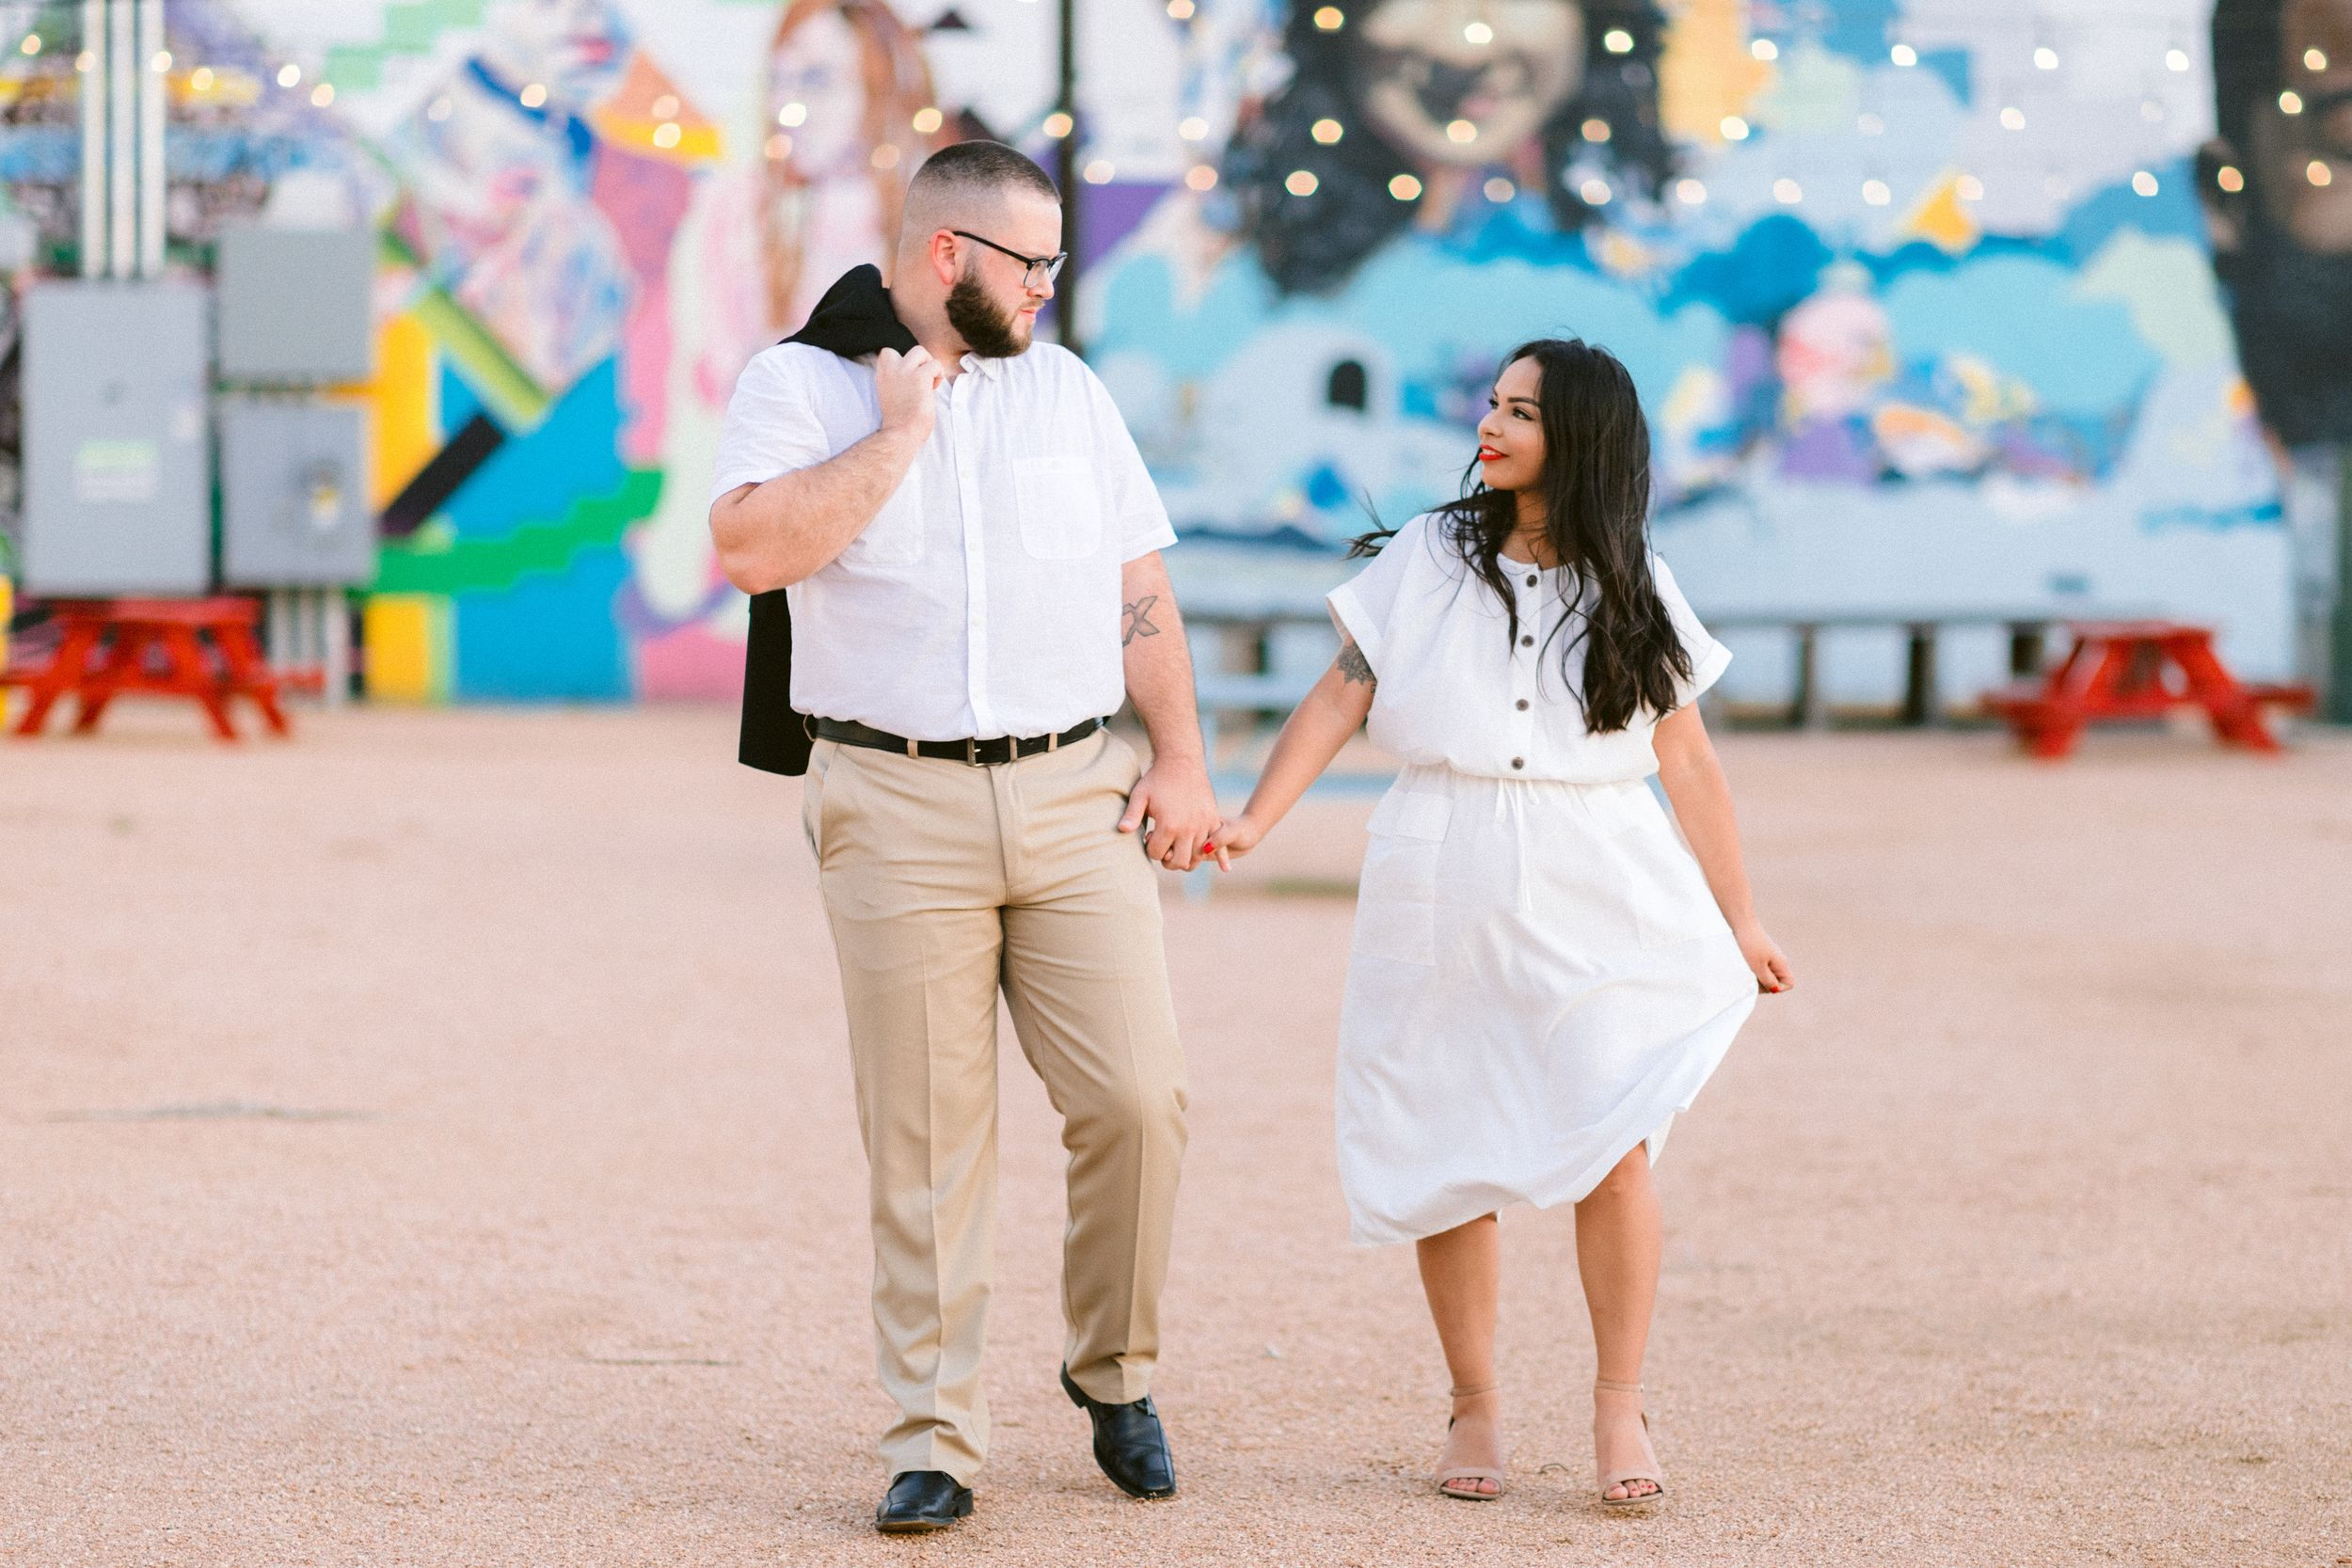 Fort Worth Engagement Session Ft. Worth Wedding Photography Elizabeth Couch The Foundry